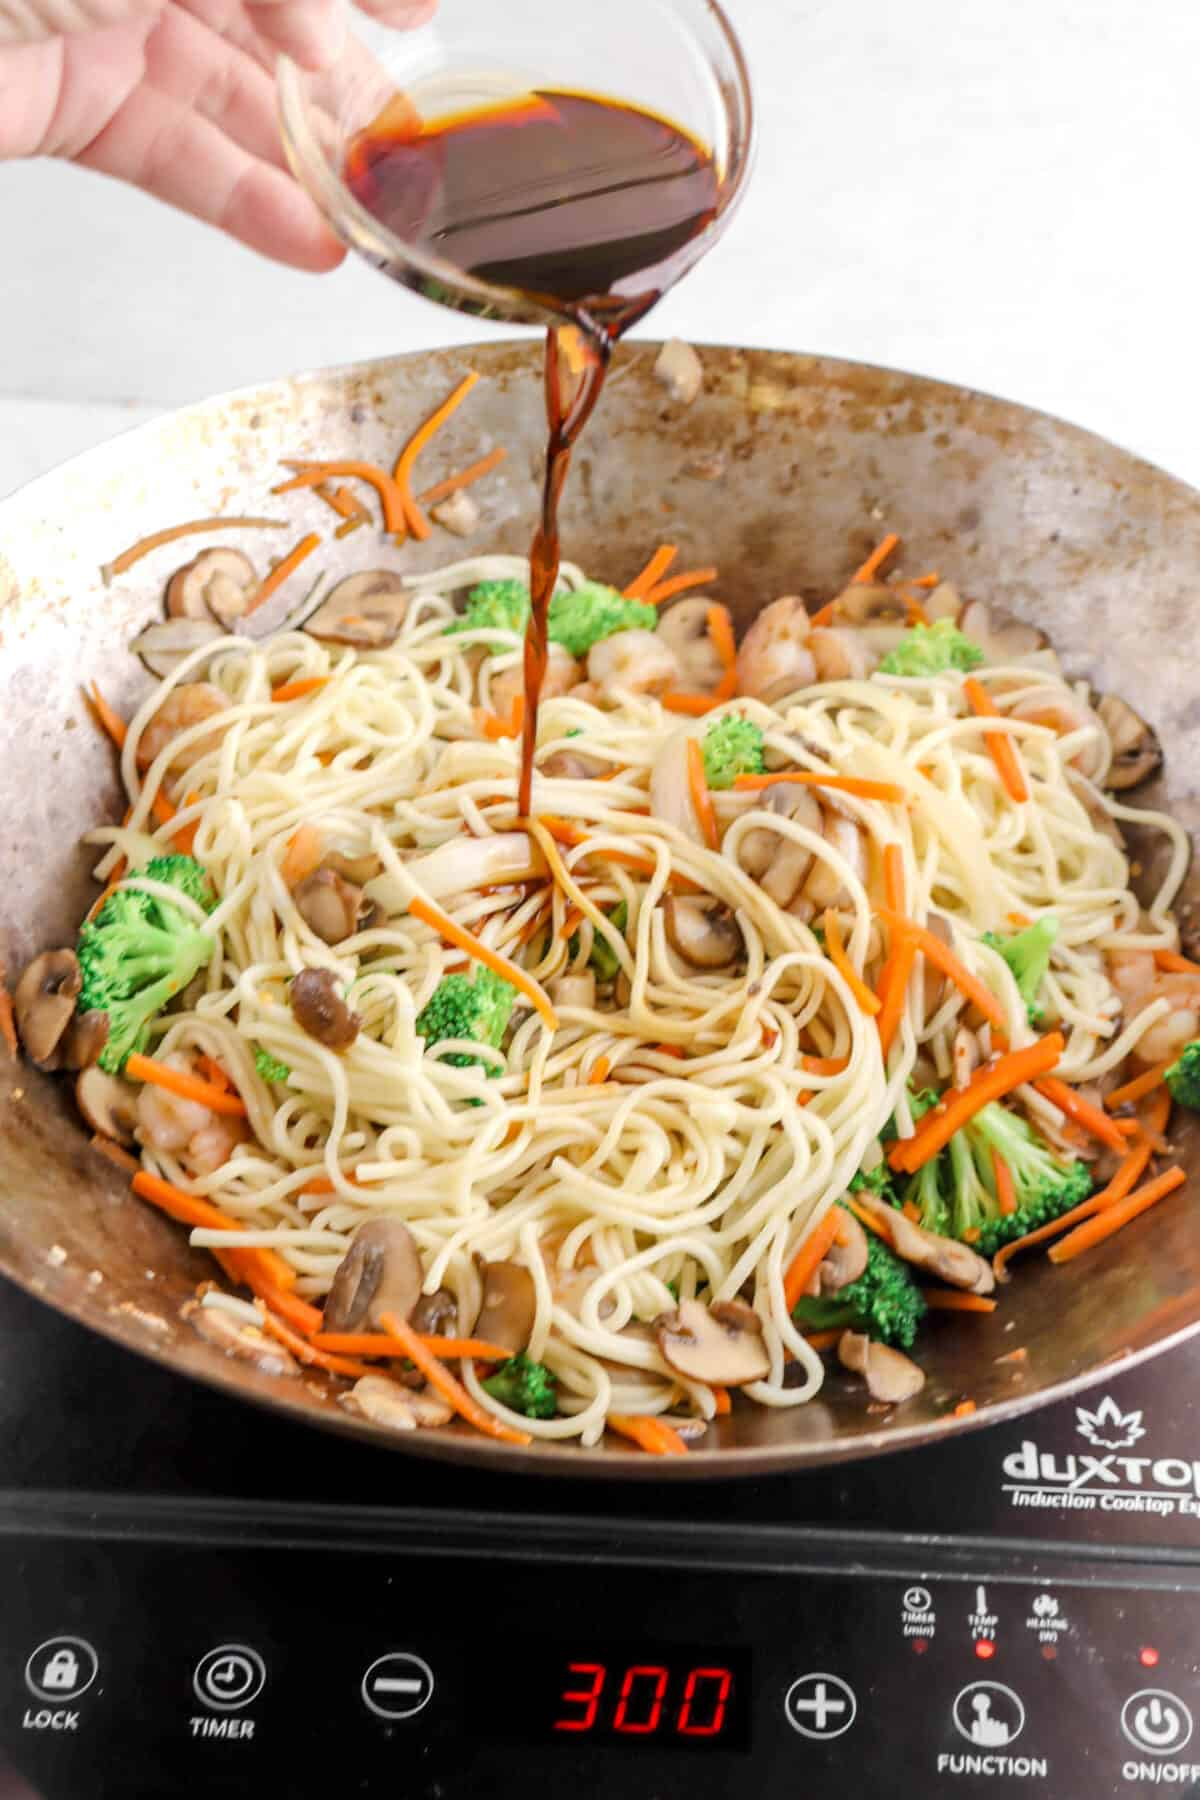 soy sauce being added to lo mein